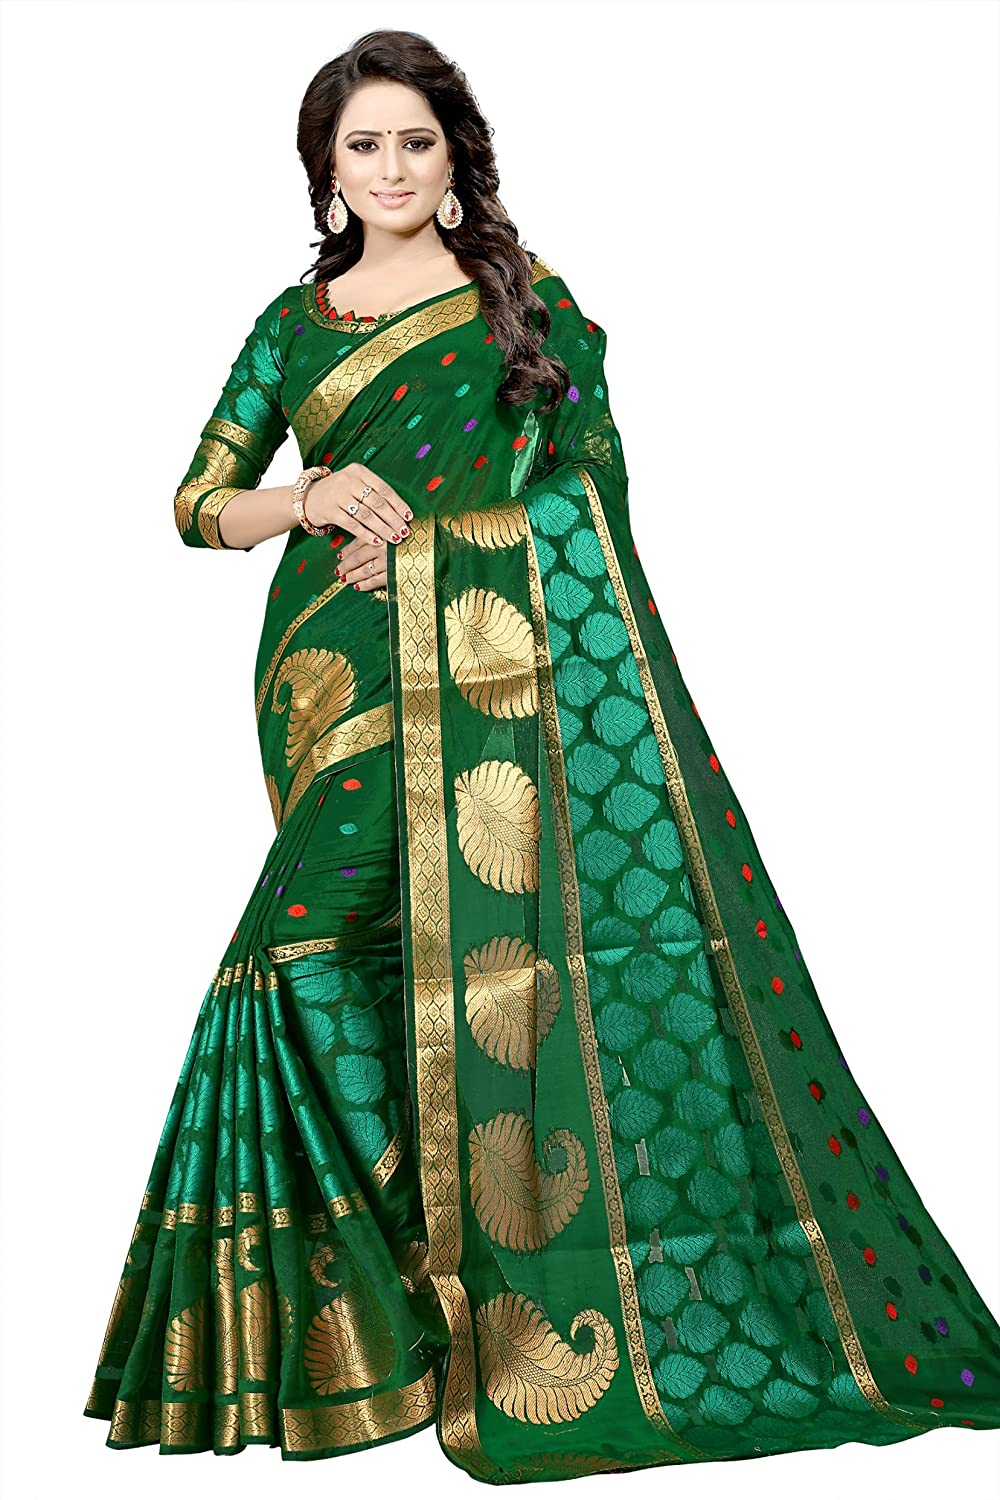 Florence Women's Green Banarasi Silk Woven Saree With